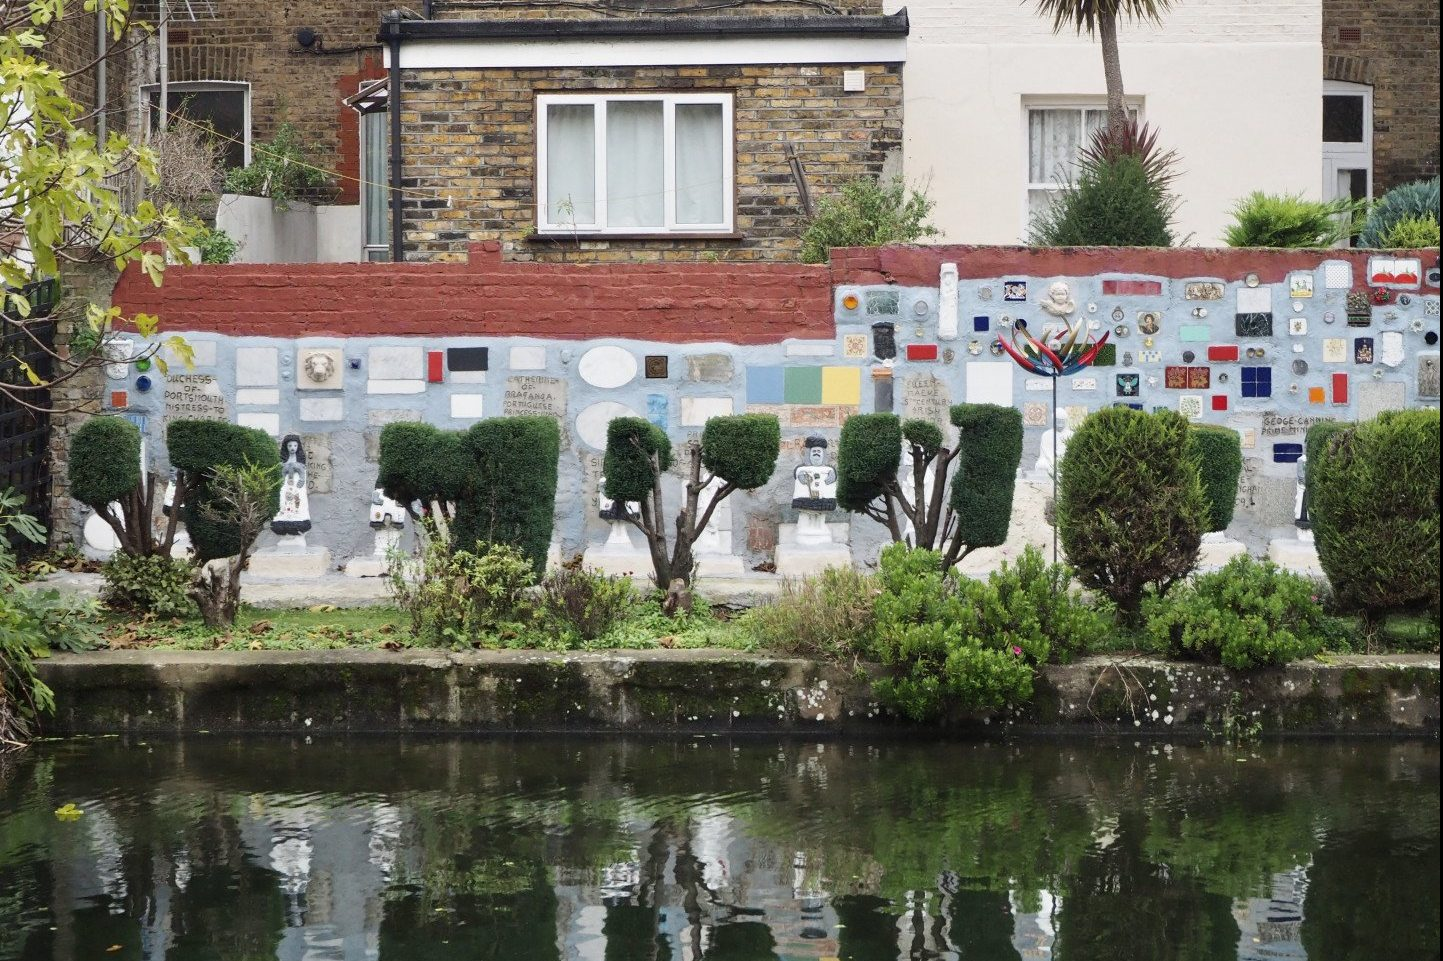 Gerry's Pompeii | The Strange Sculptures Along Grand Union Canal - Look Up London